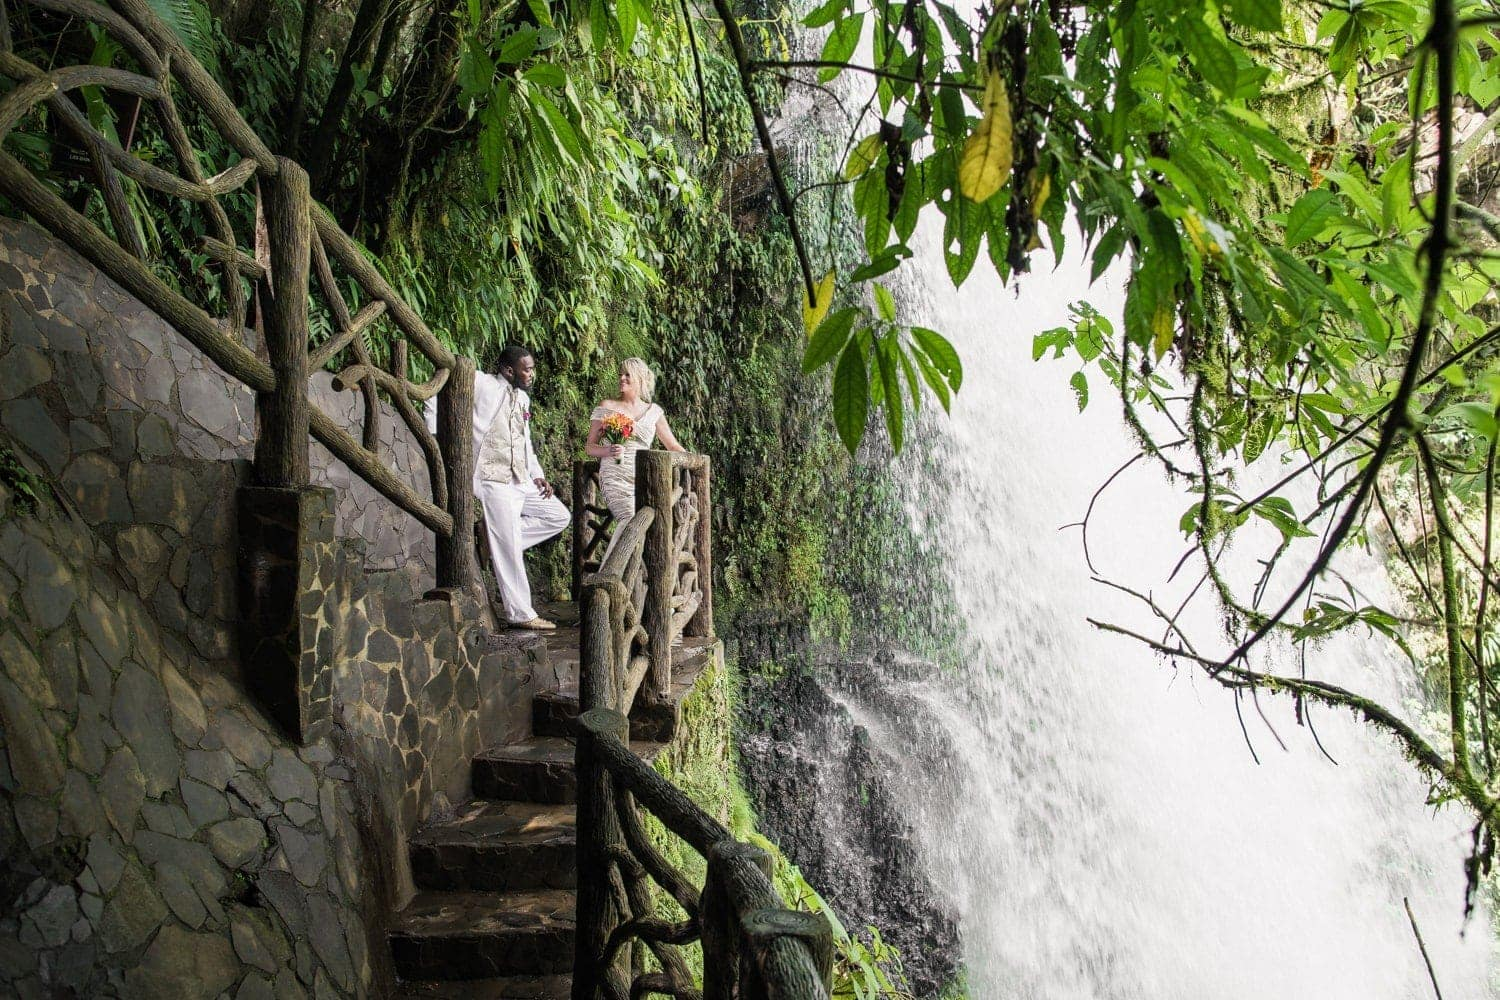 Janet-Thad-wedding-photos-La-Paz-Waterfall-Gardens-Costa-Rica-2.jpg